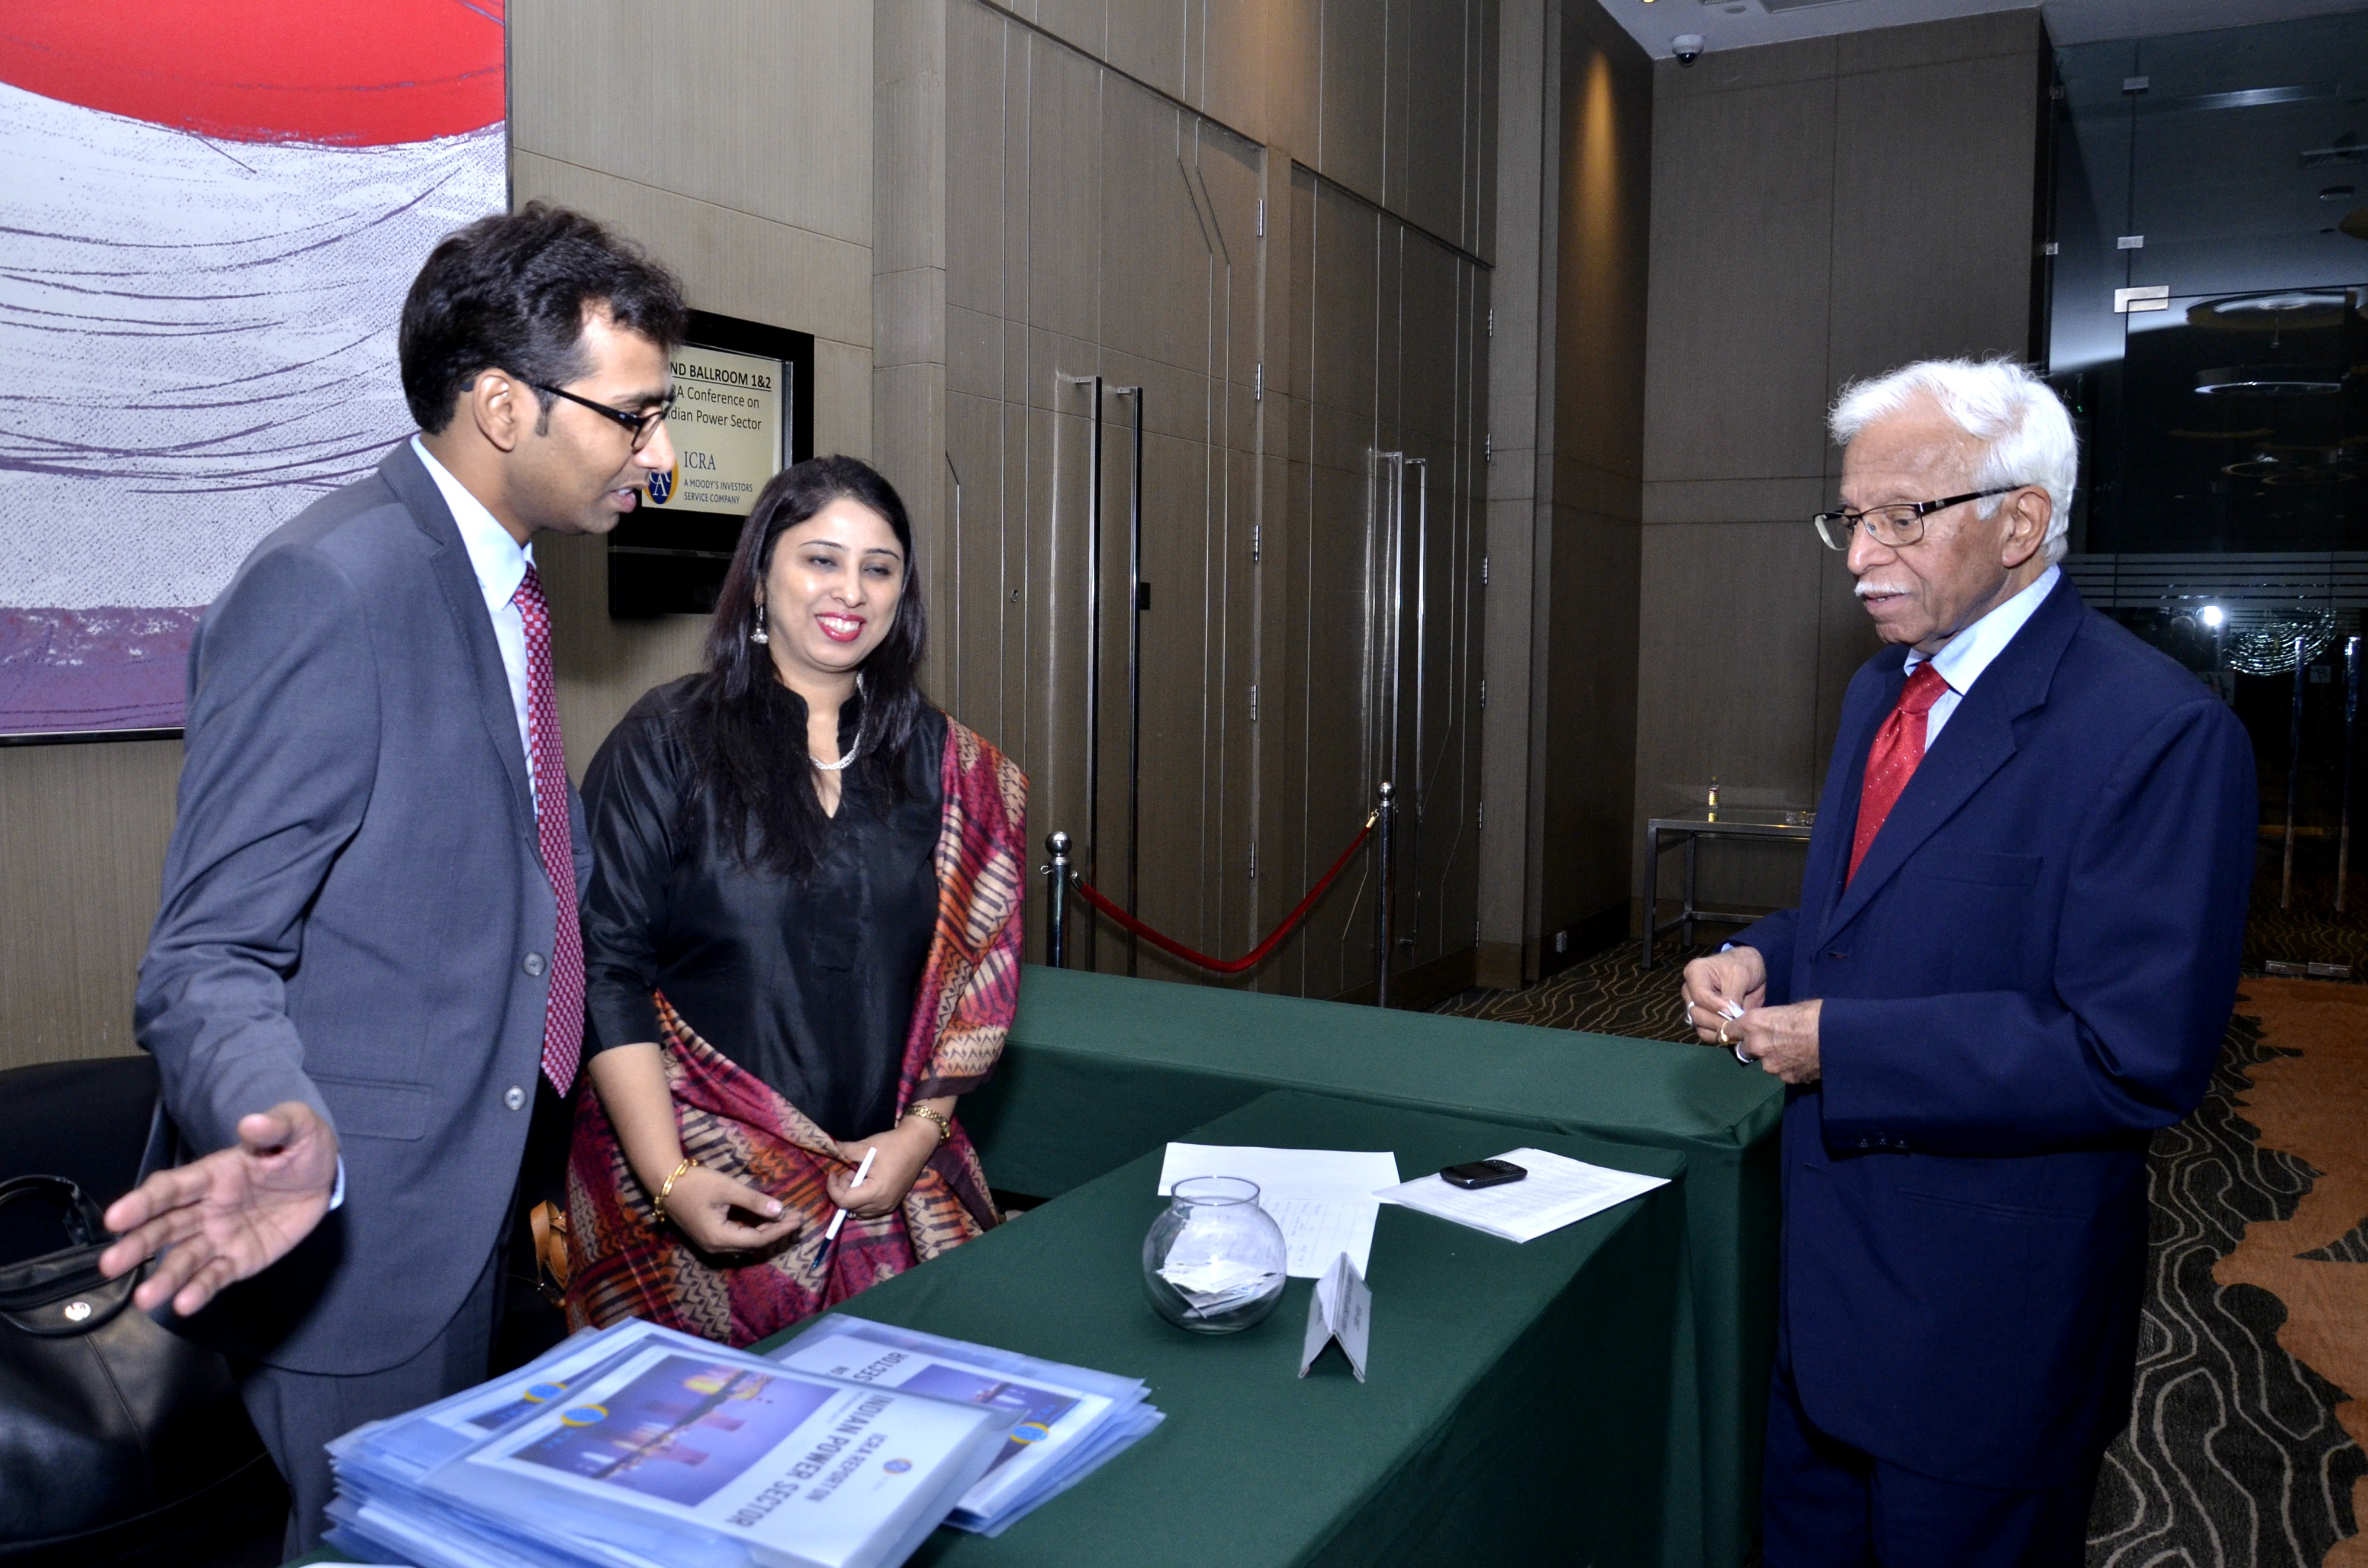 Welcoming Mr. V.S. Ailawadi, IAS (Rtd.), Former Chairman, Haryana Electricity Regulatory Commission at the Conference